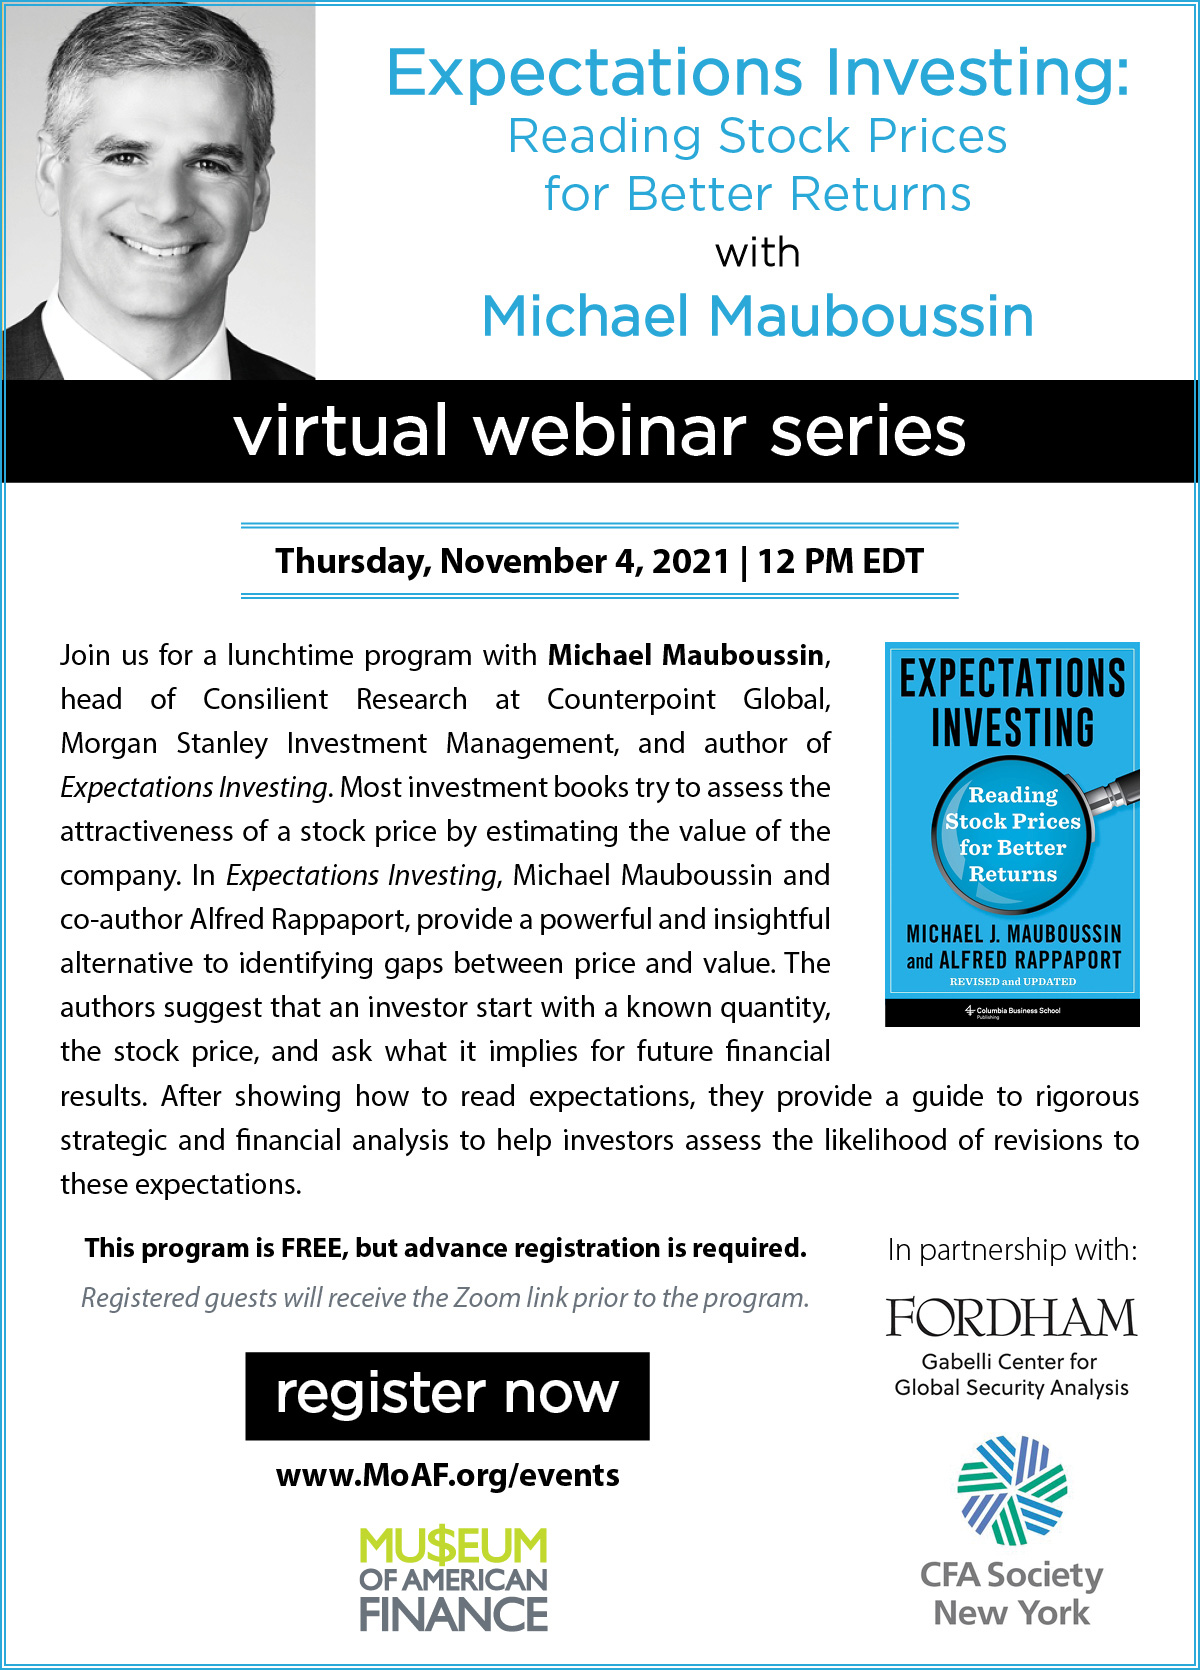 Michael Mauboussin on Expectations Investing